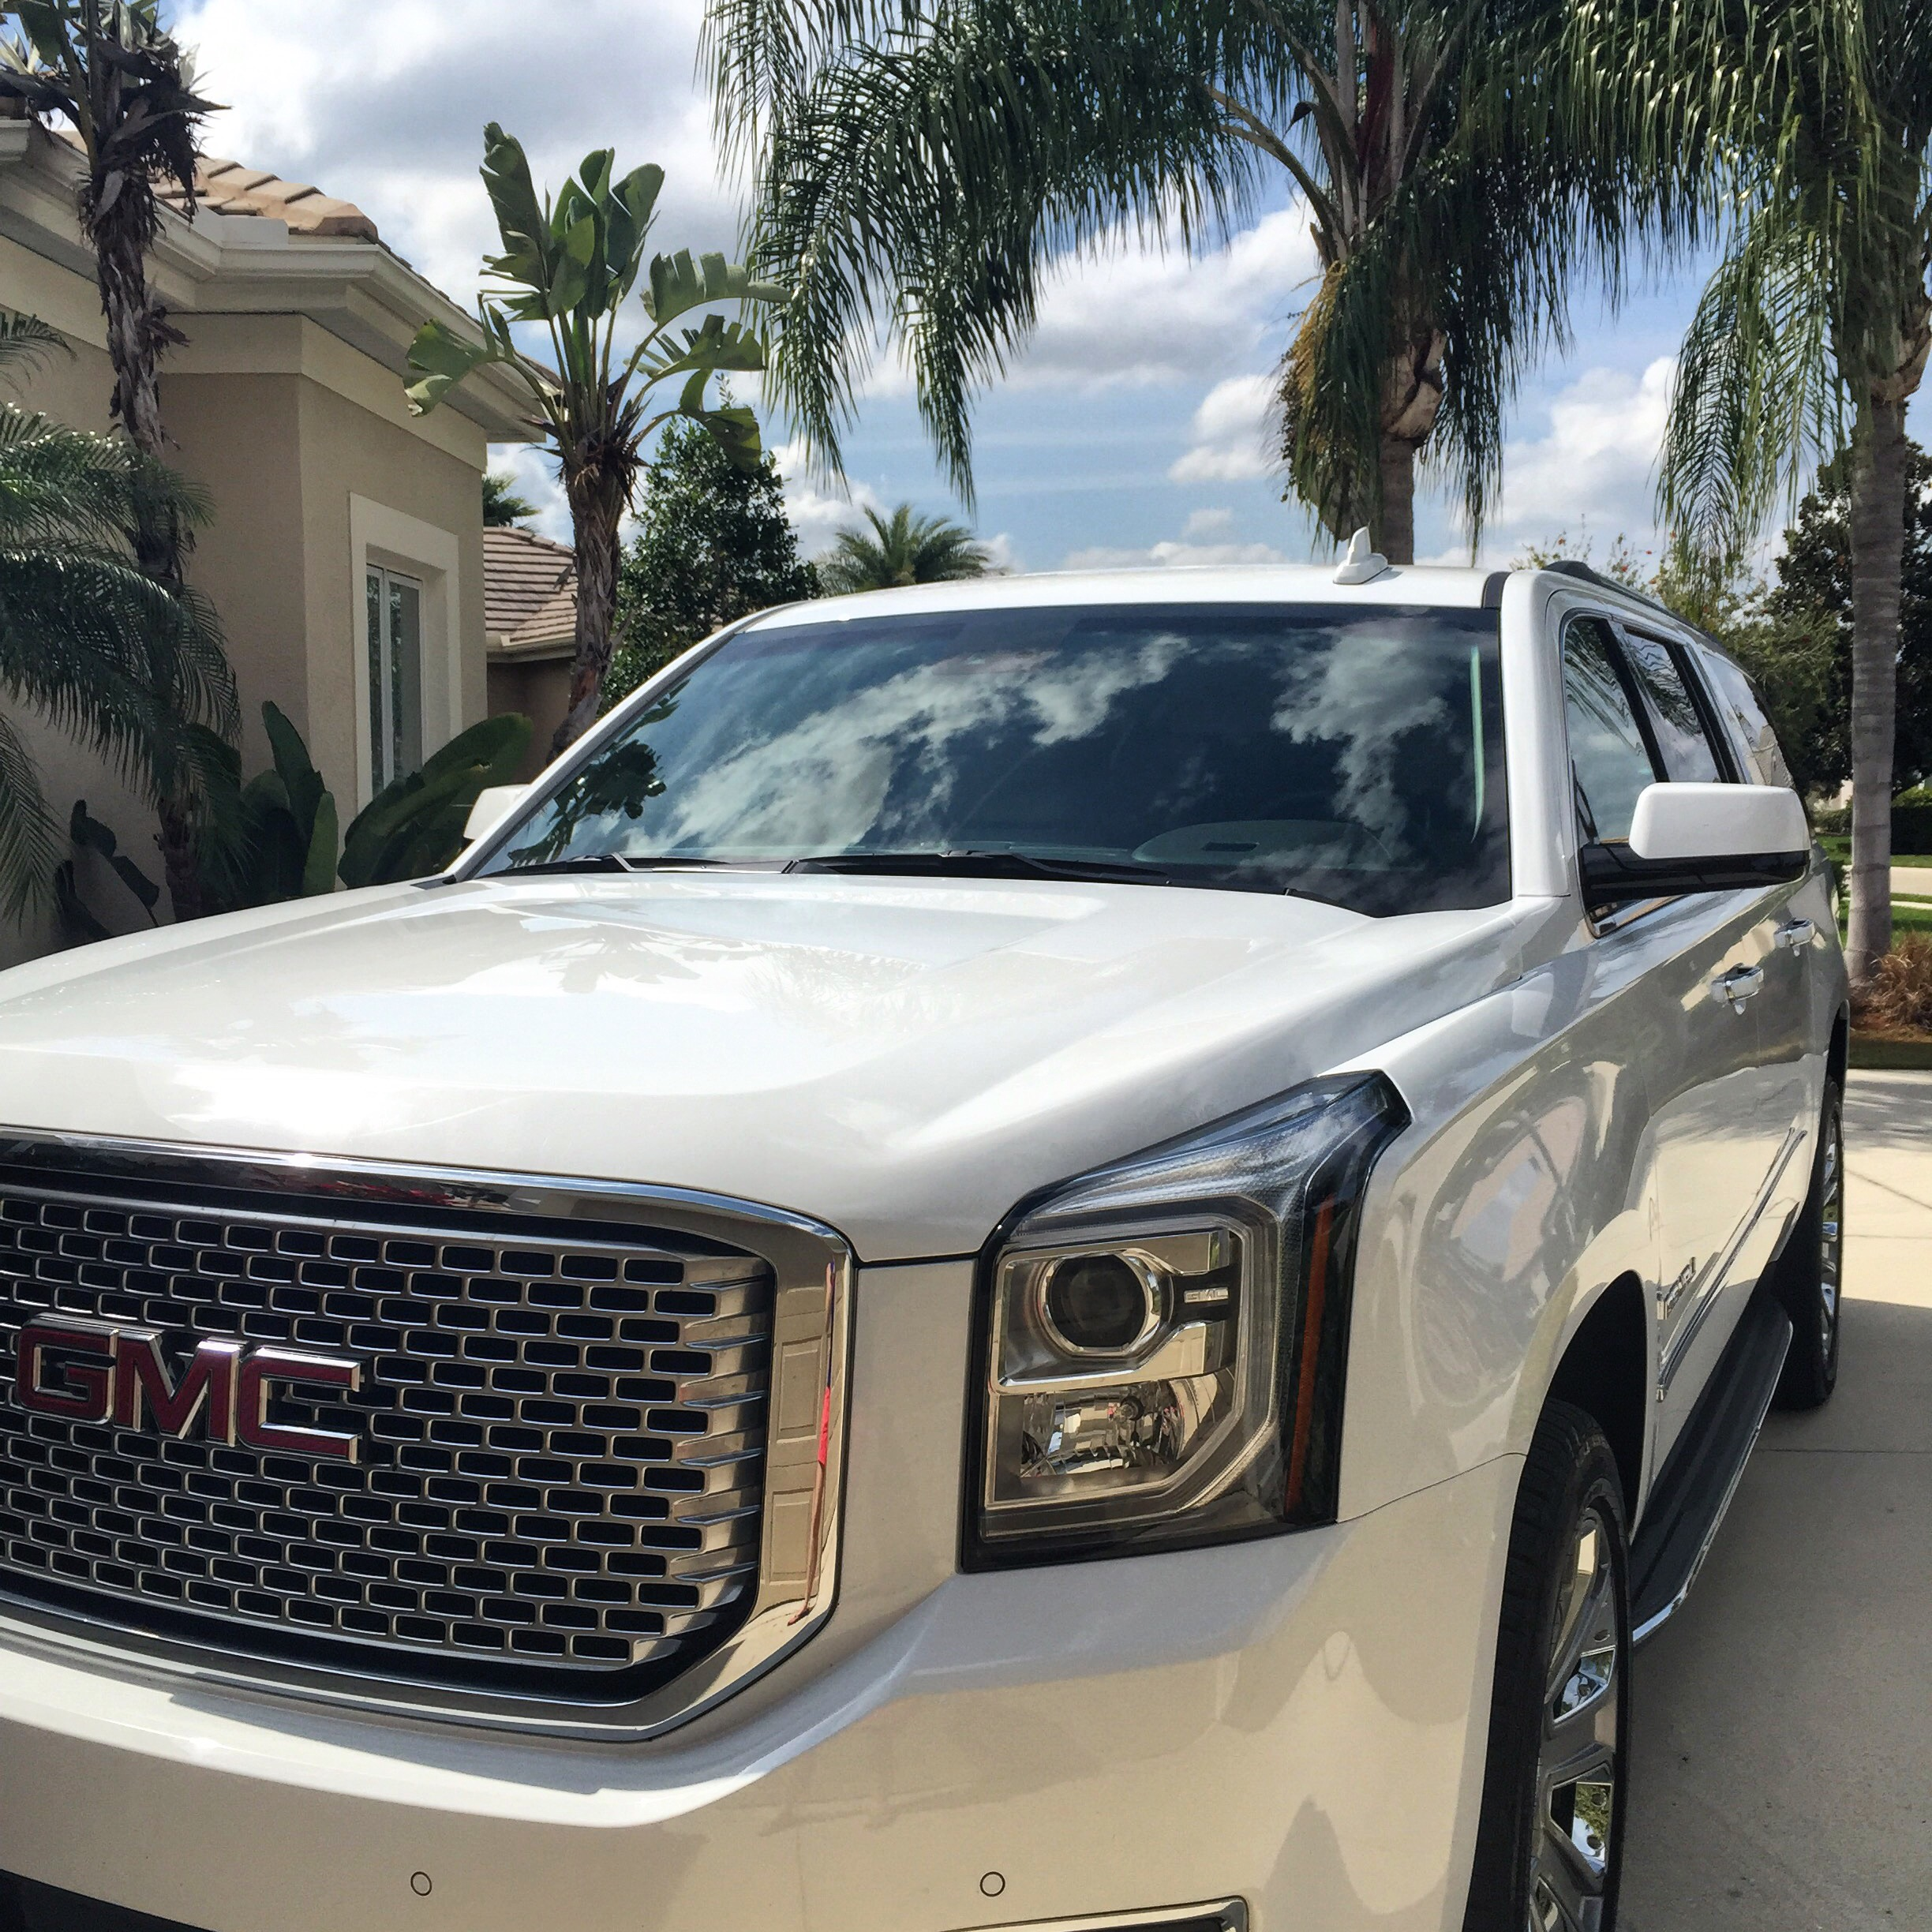 our on us photos all yukon as thanks video this week could we the for so vehicle mommy denali lending thoughts facilitate note gmc img and classy review family xl to vacation always